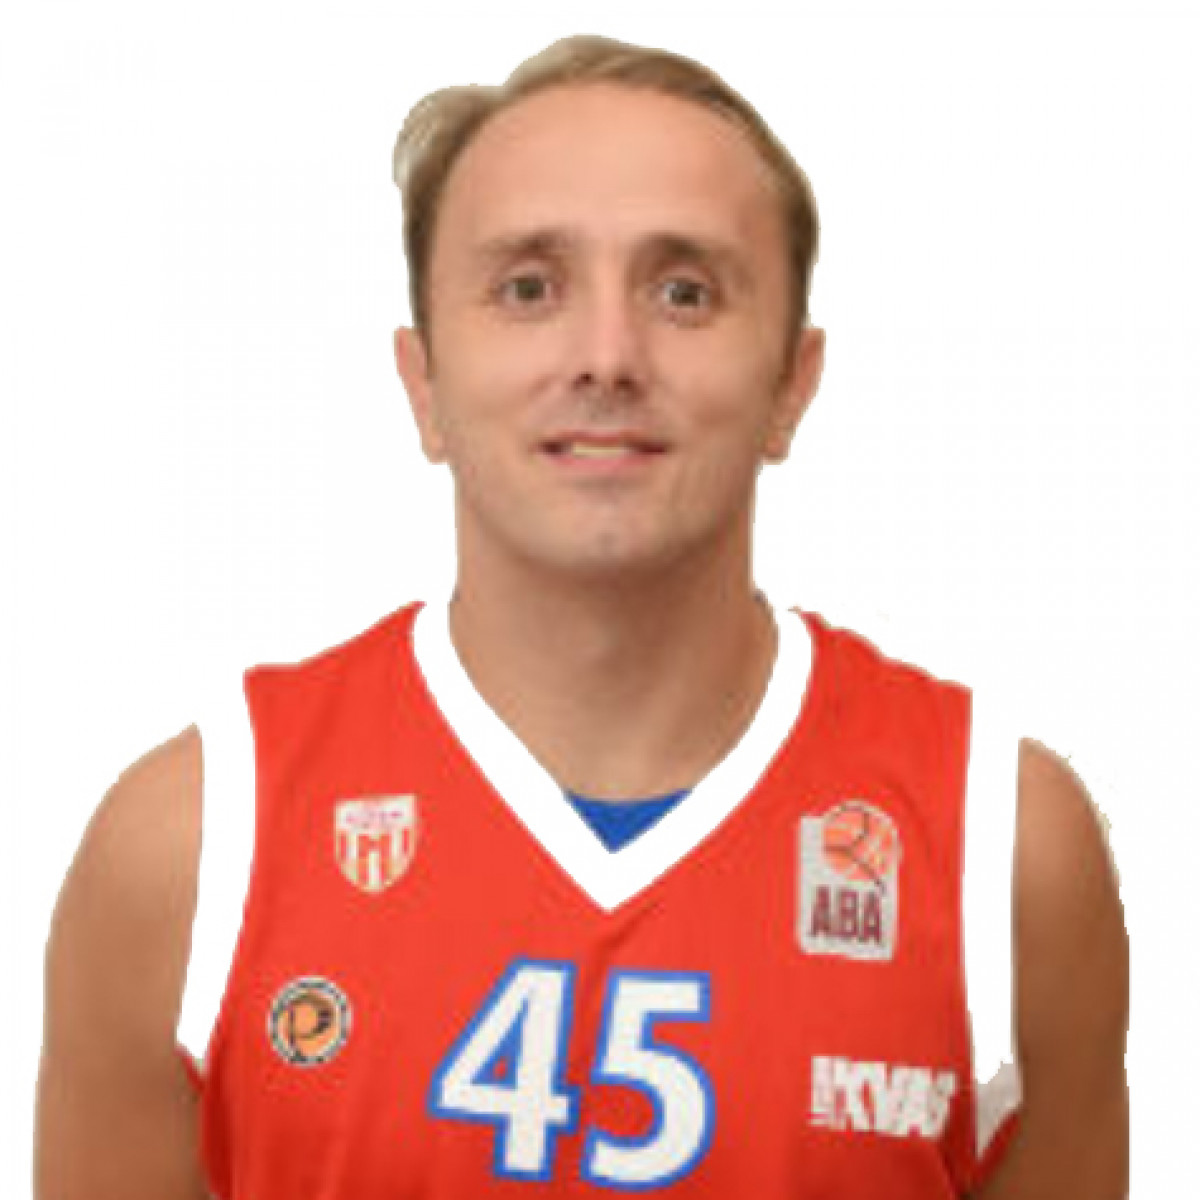 Photo of Marko Marinovic, 2018-2019 season